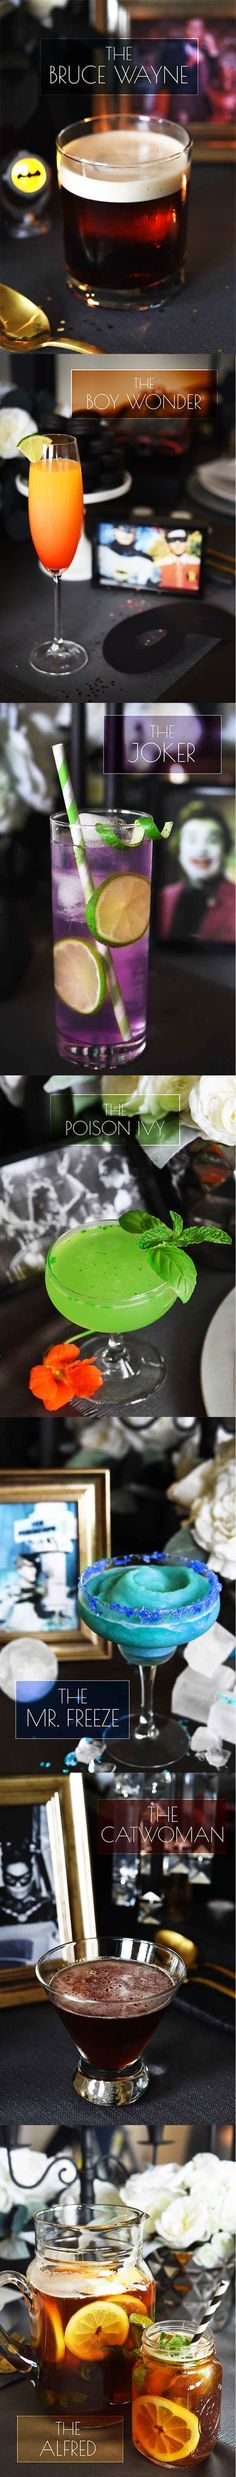 7 Batman themed cocktails & drinks for your adult superhero party! Yum Holy Cow Batman! #cocktails inspired by #Batman